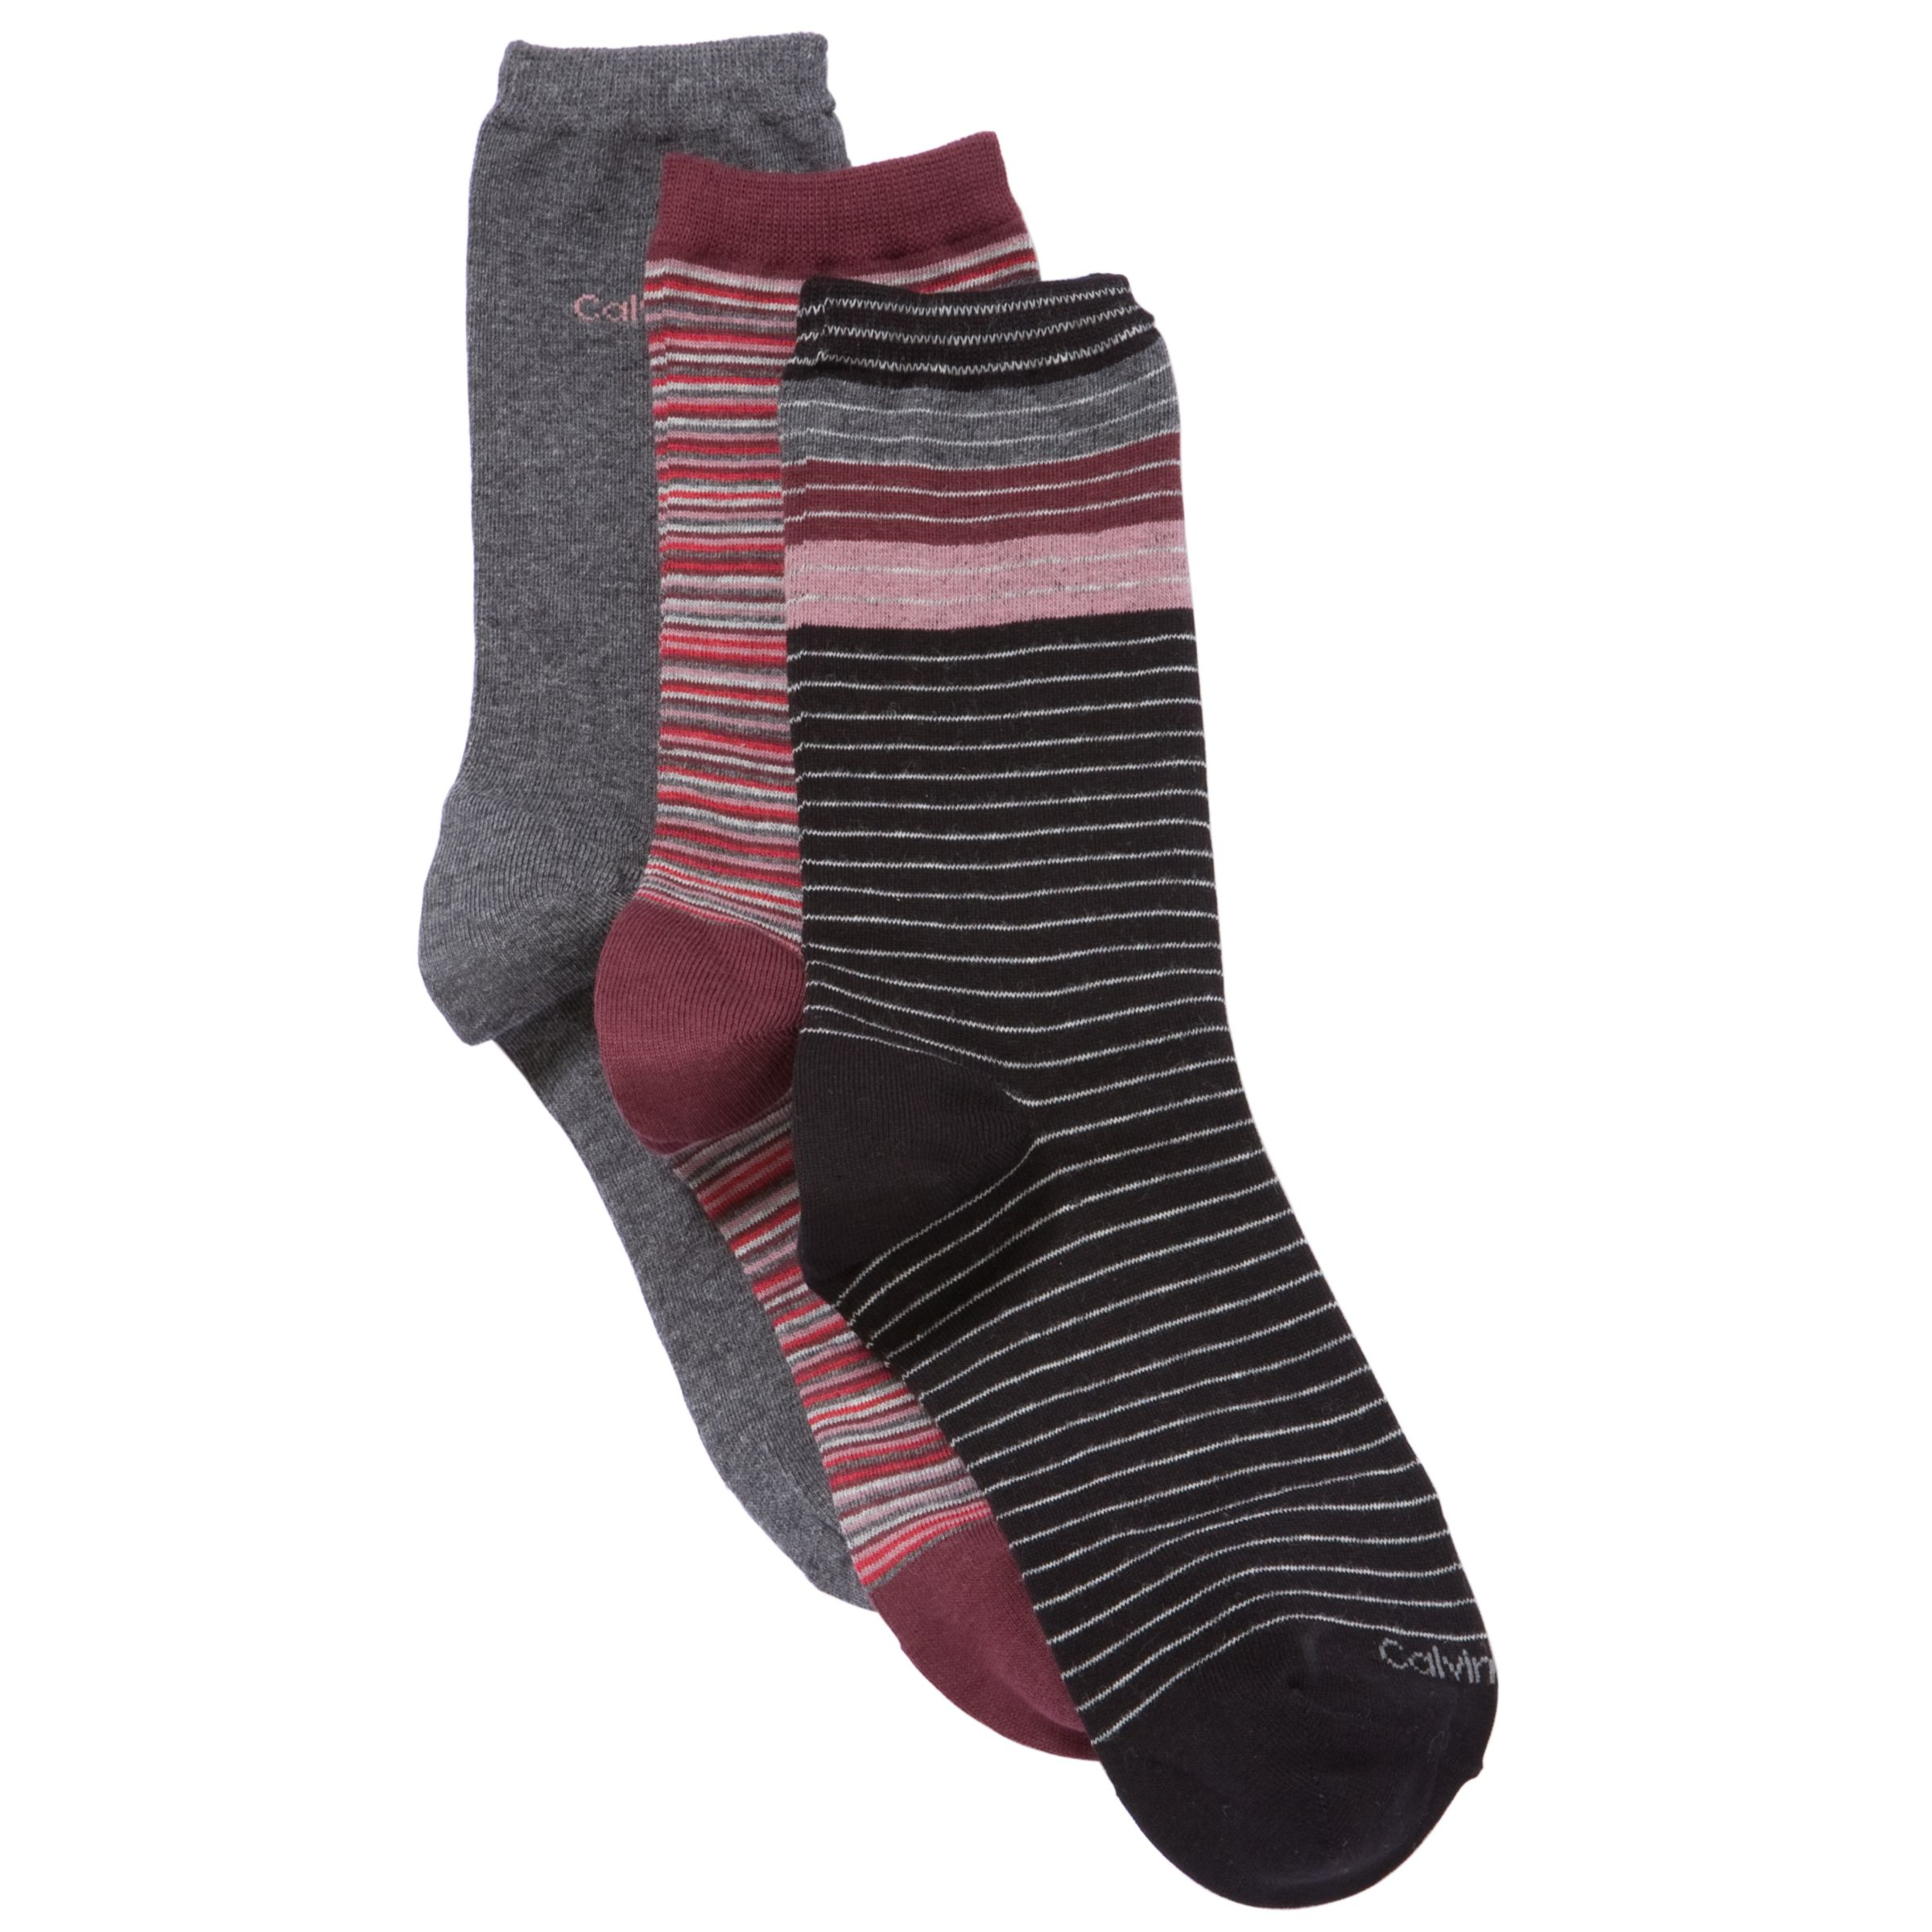 Calvin Klein Stripe Crew Socks, Pack of 3, Multi